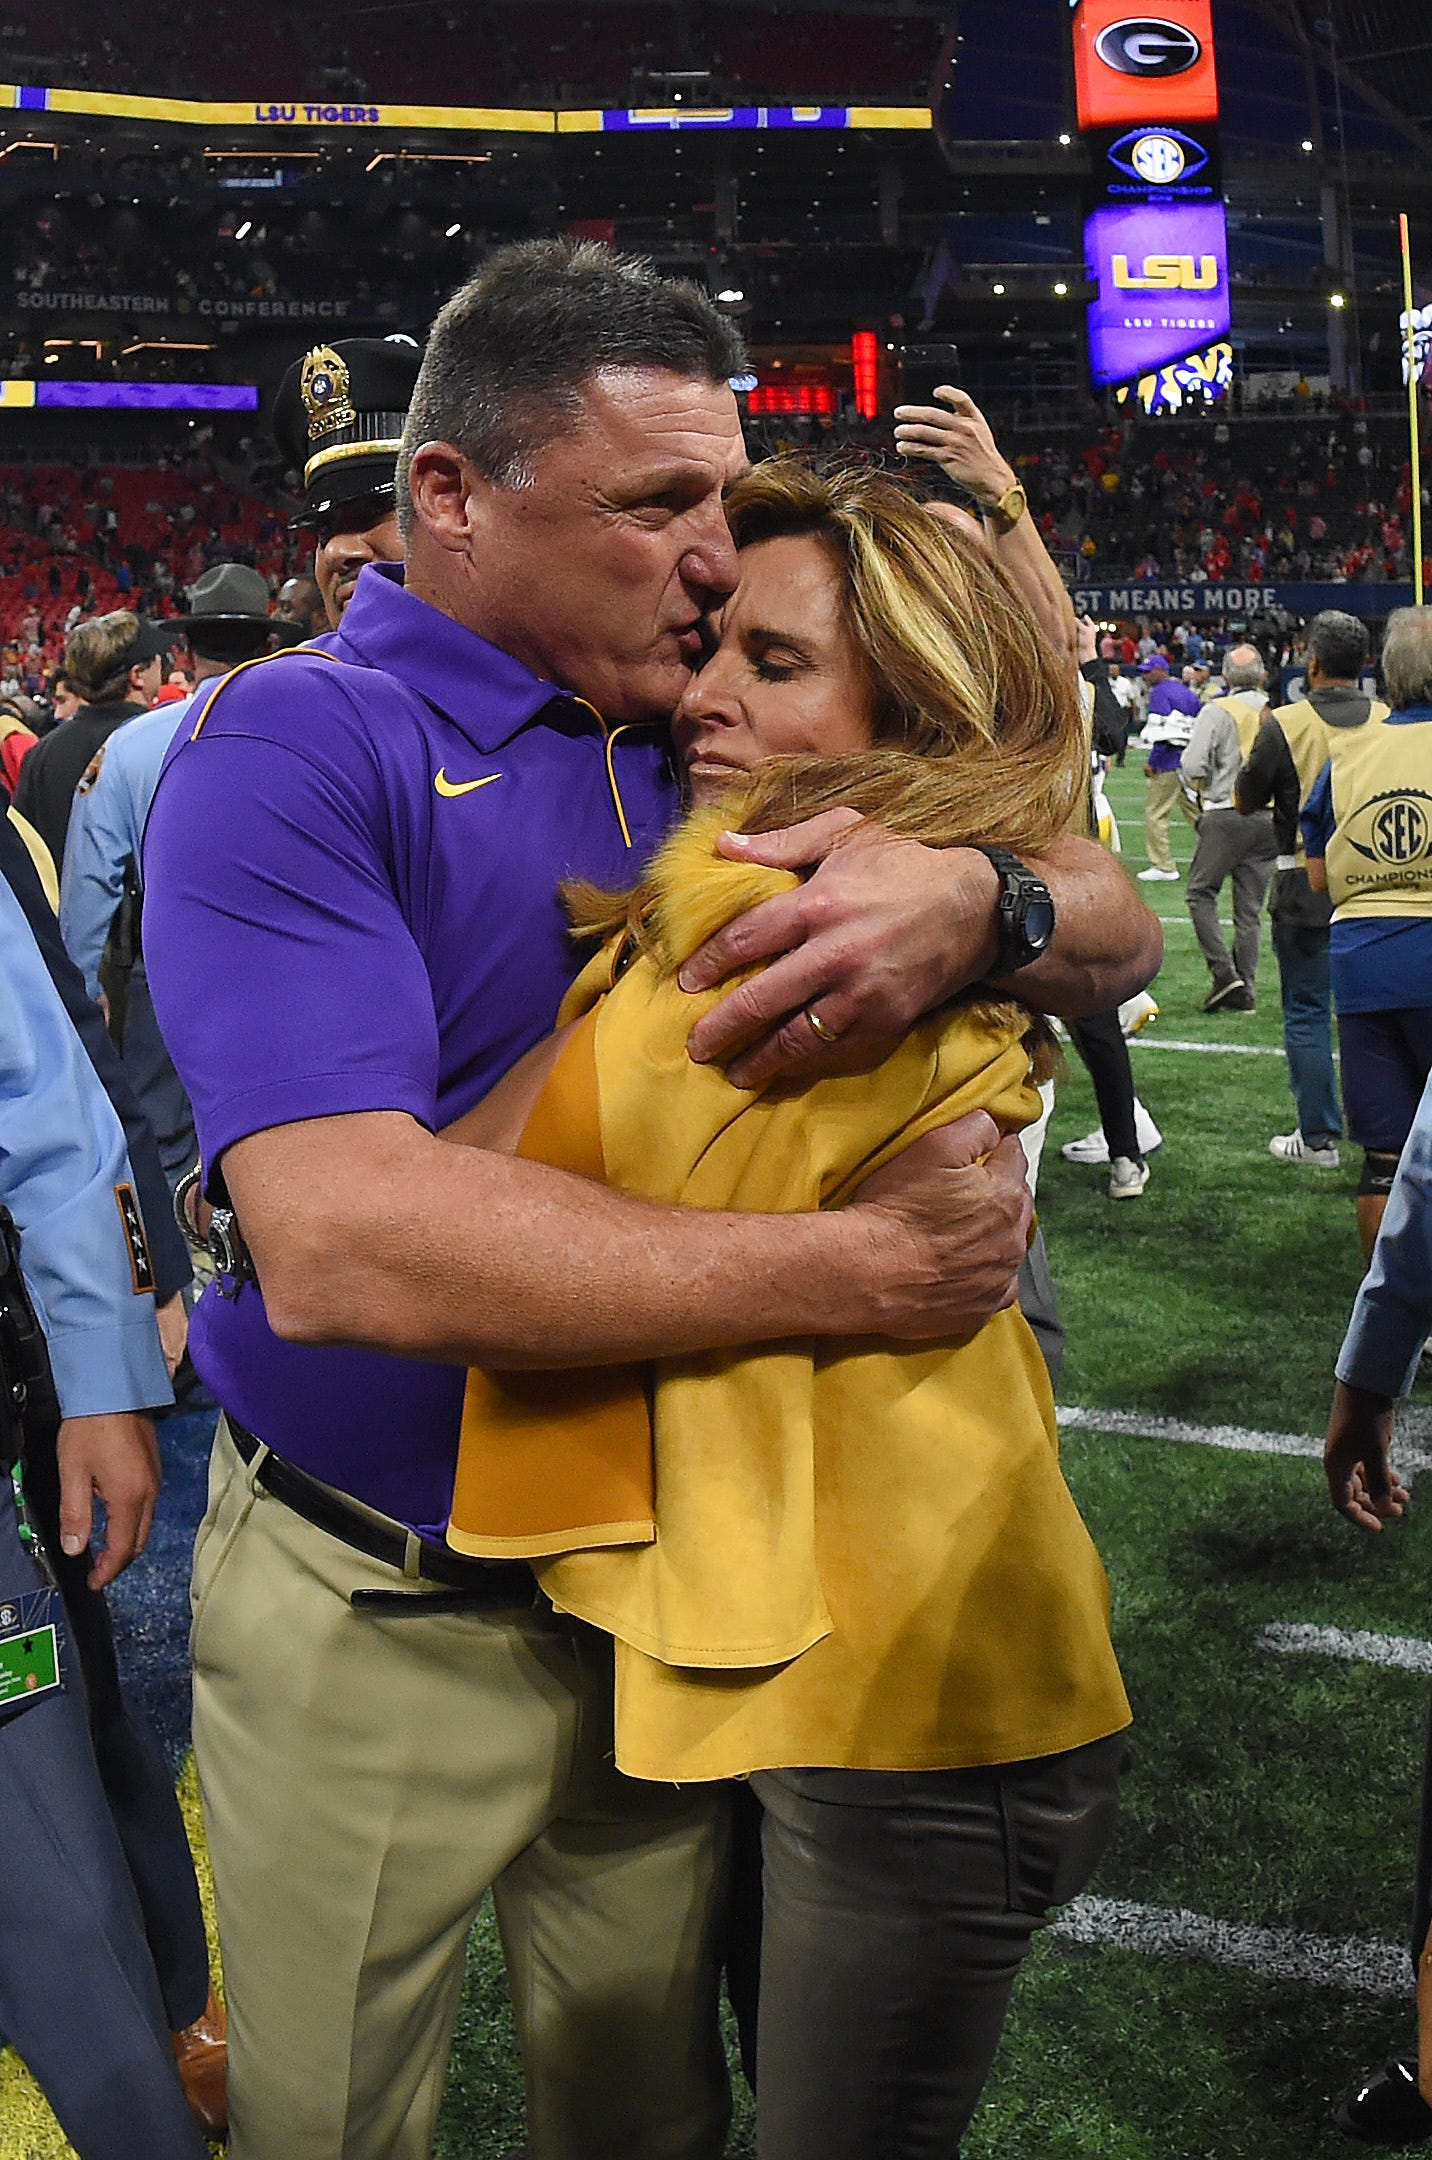 LSU football coach Ed Orgeron files for divorce from his wife of 23 years, Kelly